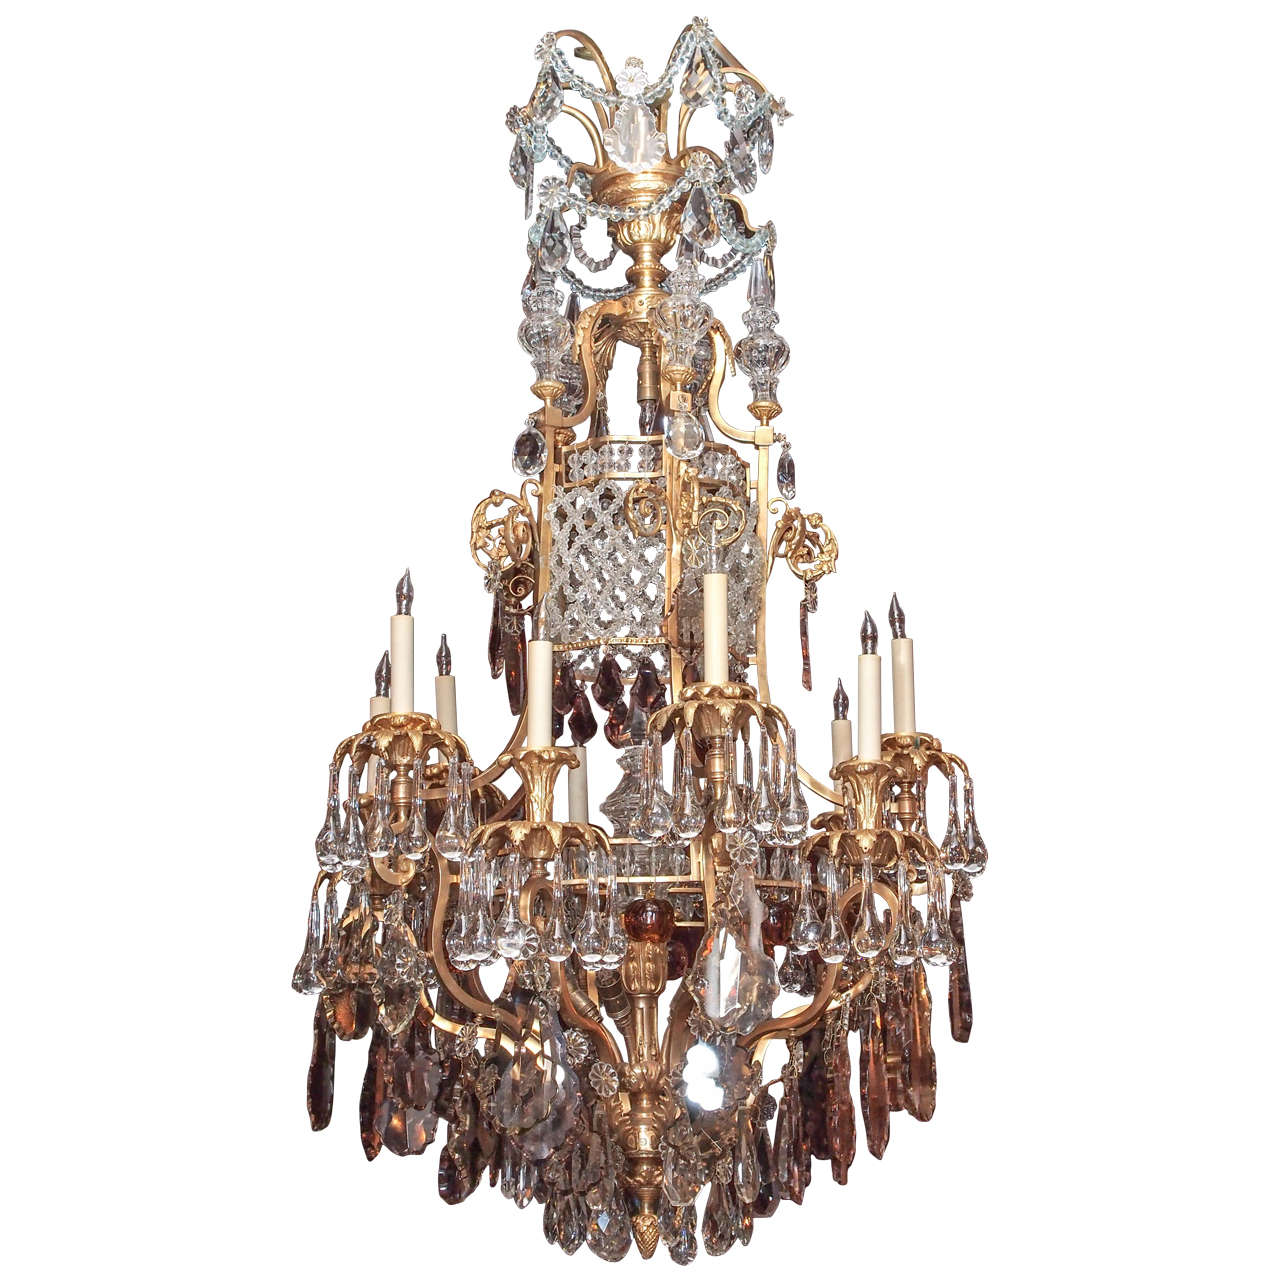 Antique French Napoleon III, Multi-Color Baccarat and Ormolu Chandelier 1 - Antique French Napoleon III, Multi-Color Baccarat And Ormolu